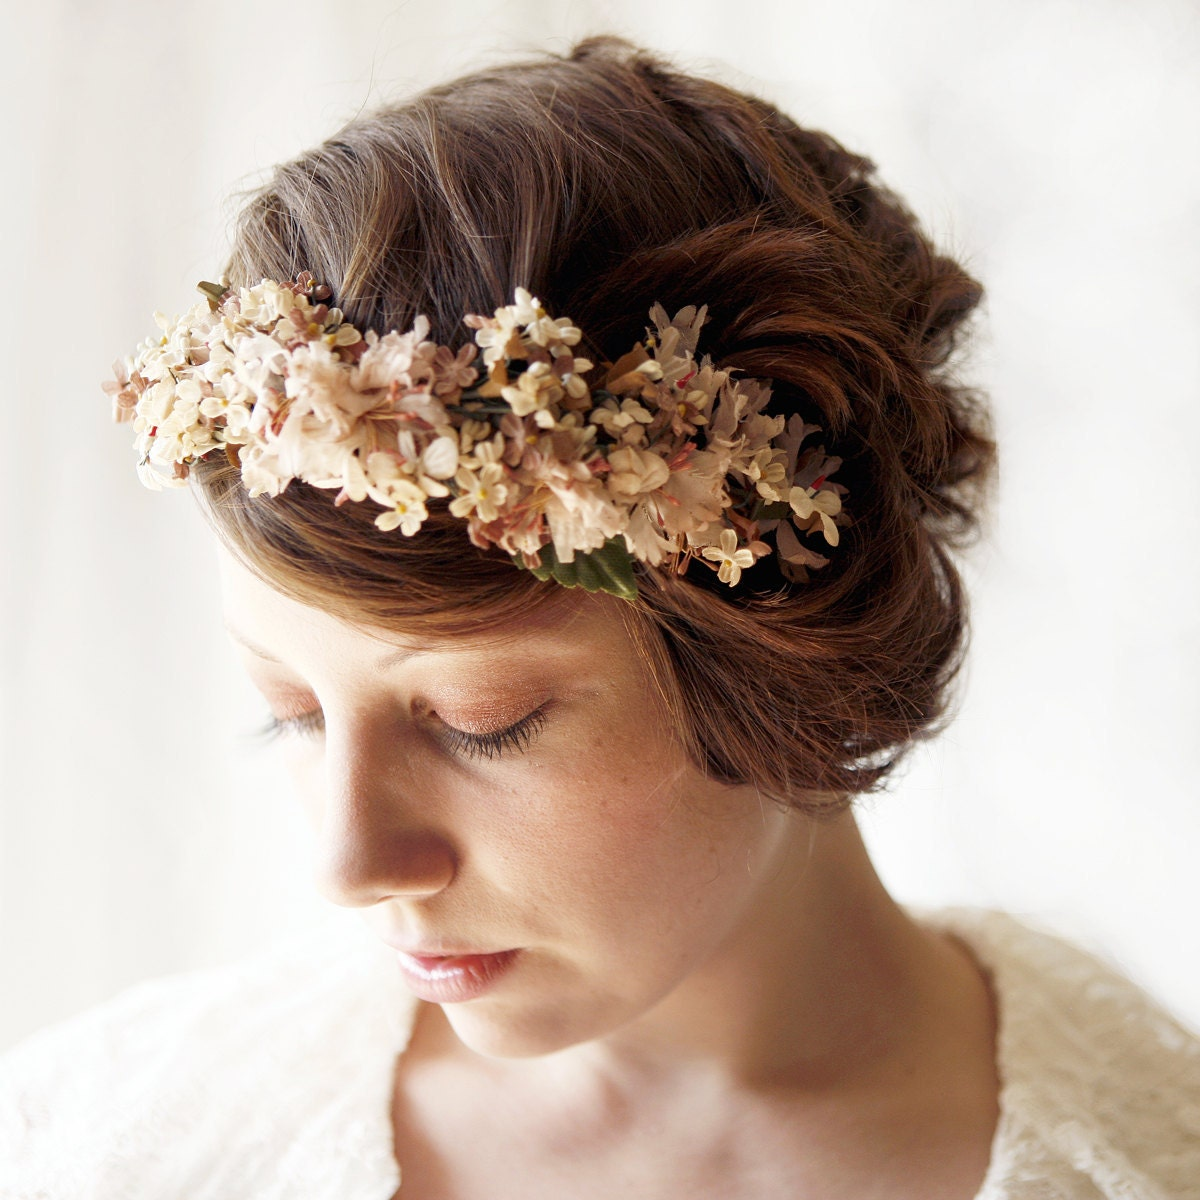 Vintage Inspired Crowns, Fascinators, and Combs by Which Goose